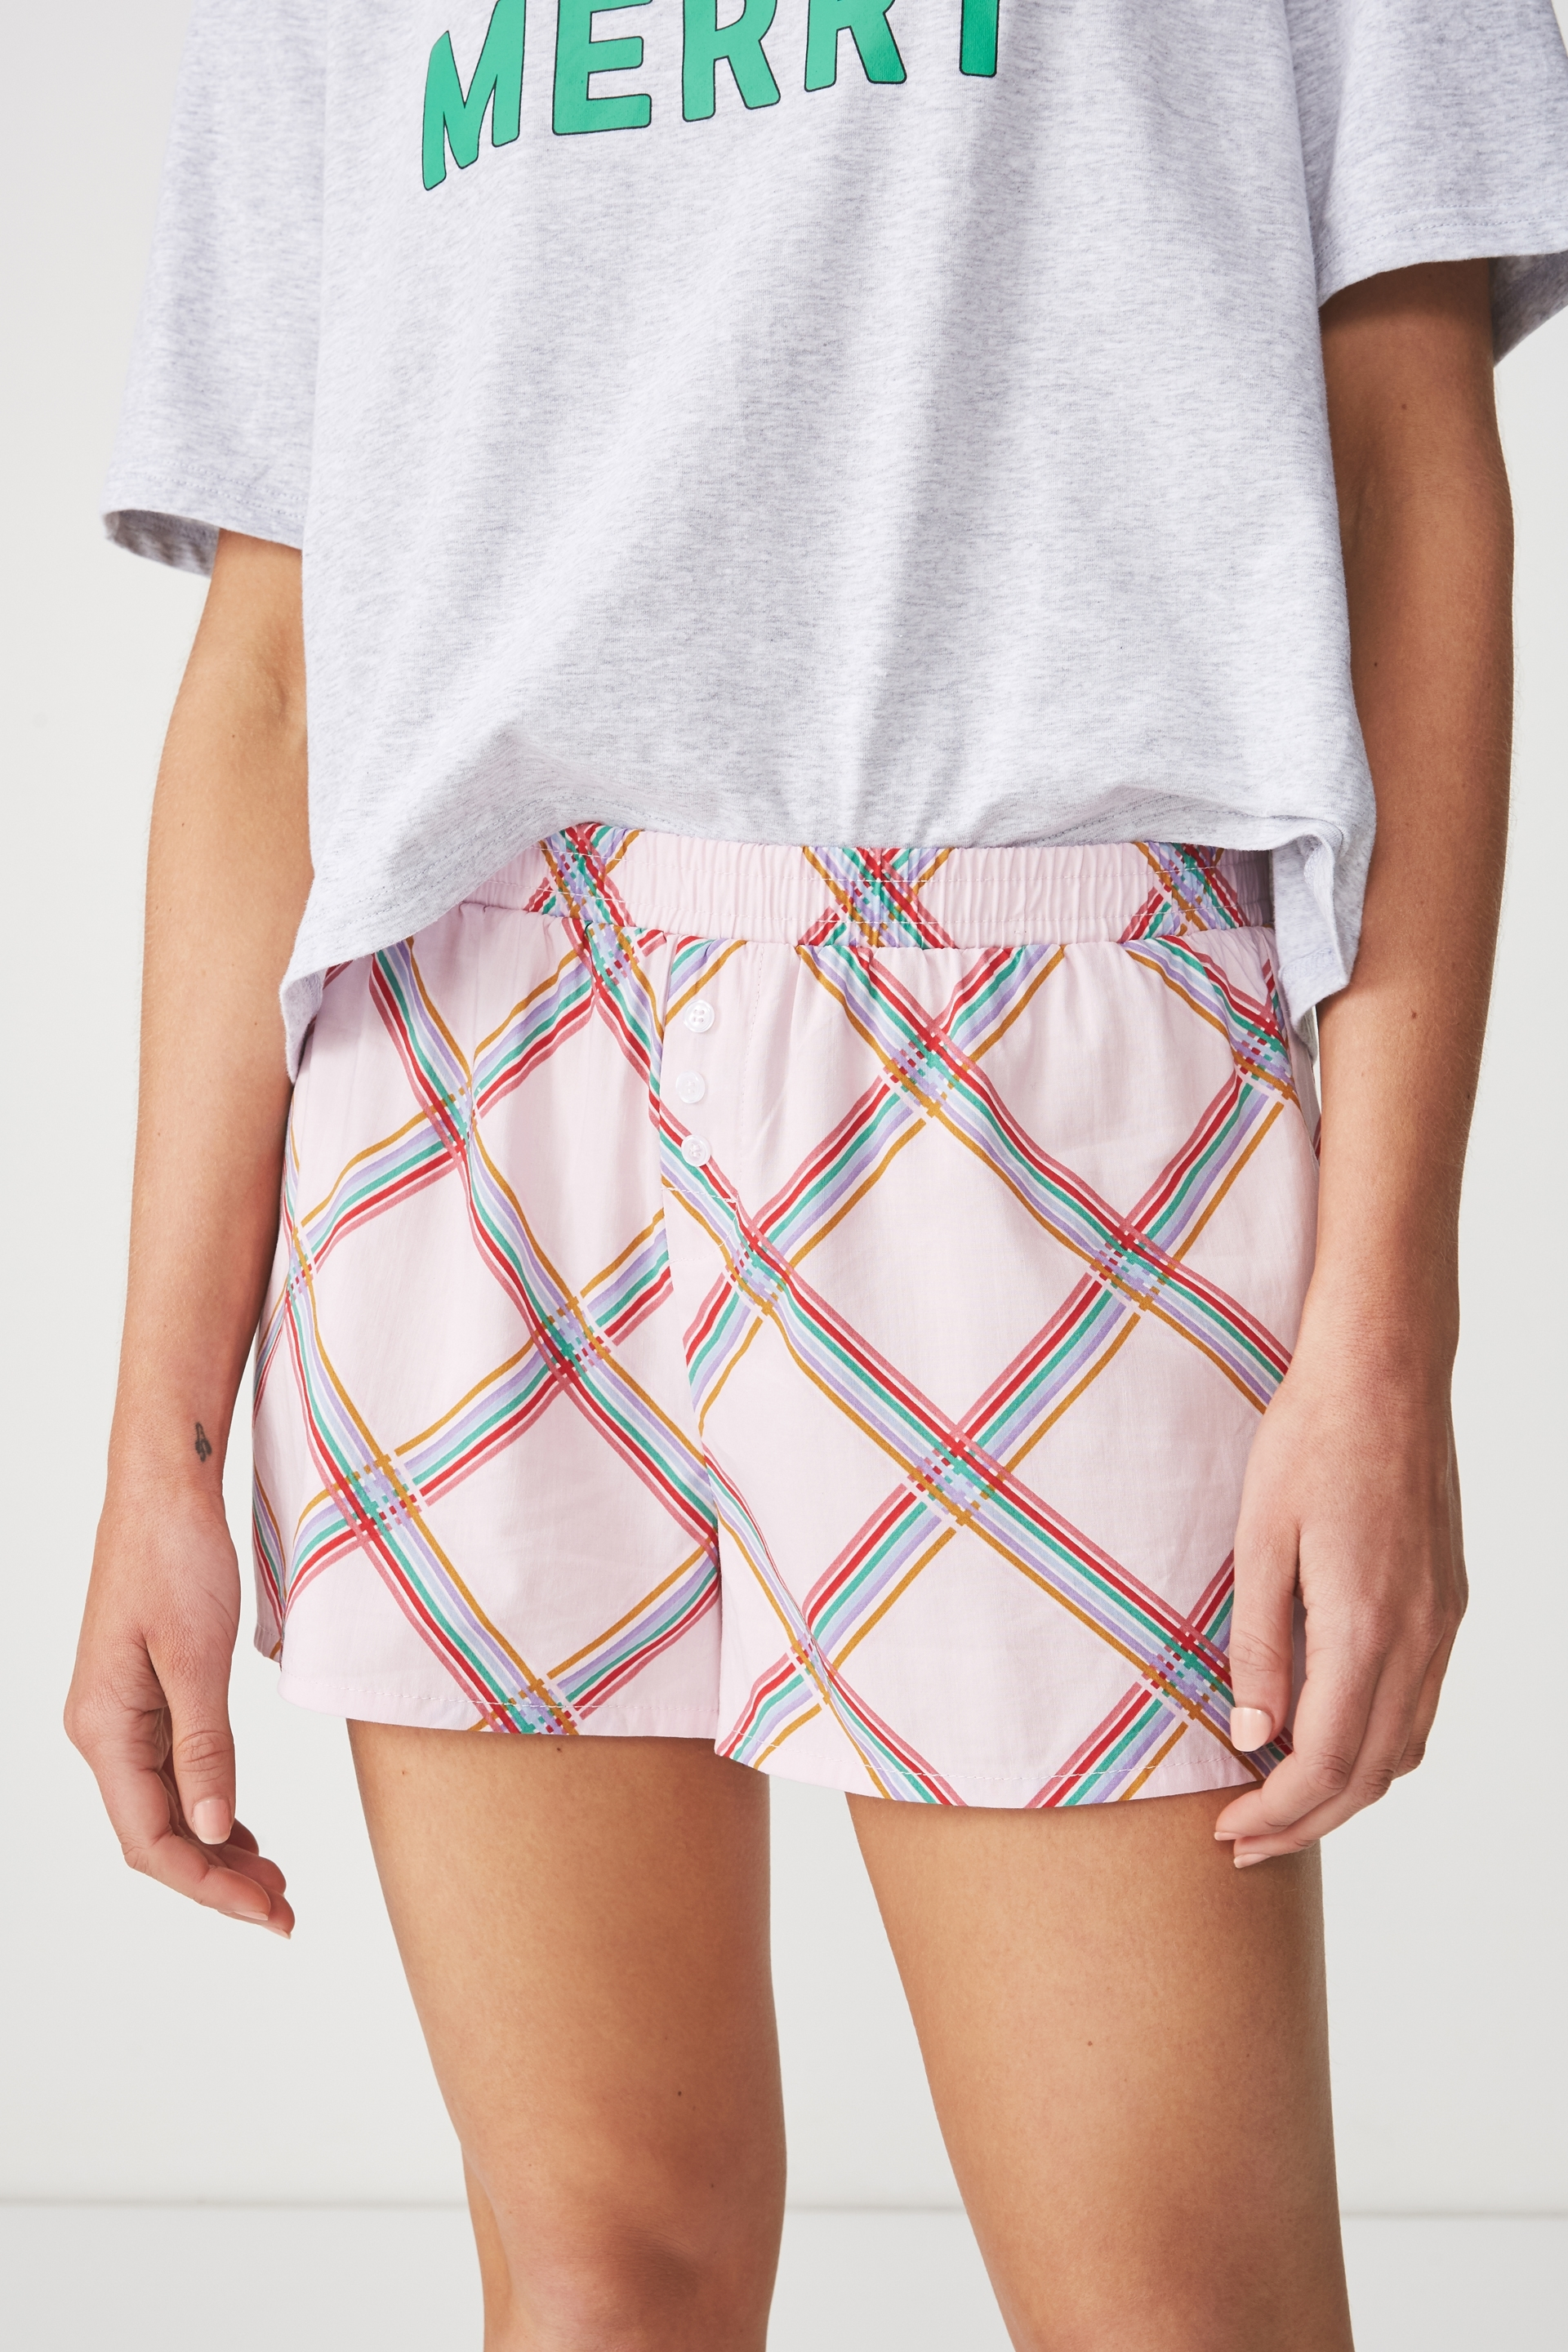 Pyjama shorts should always be as fun as the Bedtime Fun Shortie. This pyjama short is available in a range of prints and colours and features a mid-ride waistline. Mix and match with our pyjama tops for a cute summer pyjama set. - Mid rise - Short length - Elasticated waistband - Decorative drawcord - Decorative fly - Woven fabric MODEL WEARS SIZE: SMALL - AU 10 US 6 EUR 38 55% COTTON 45% VISCOSE